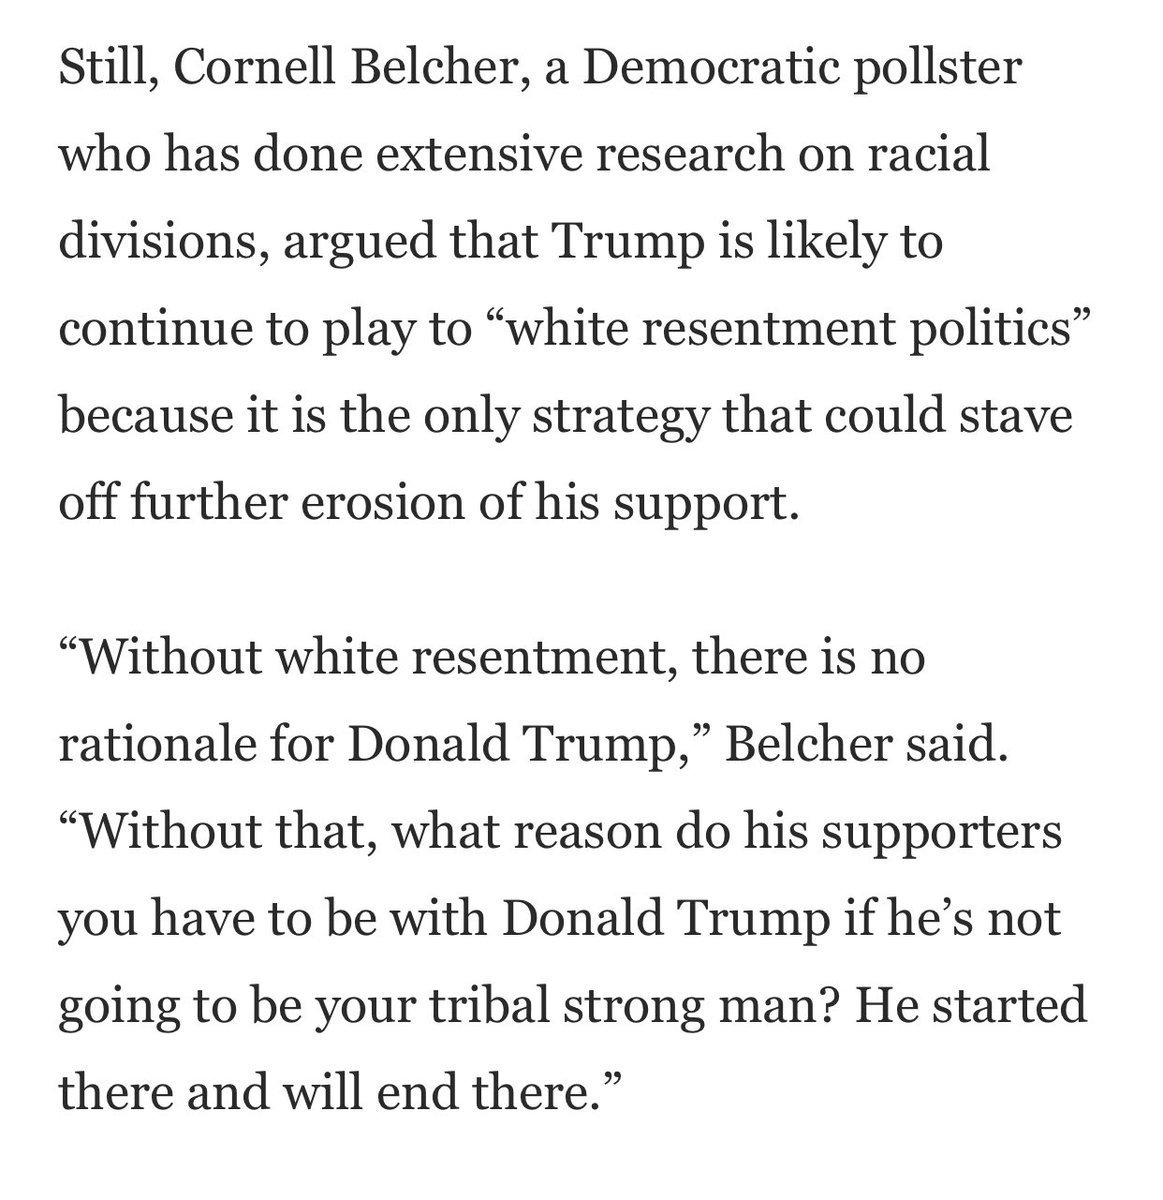 One more quote, from @cornellbelcher: https://t.co/yvQah63a7E